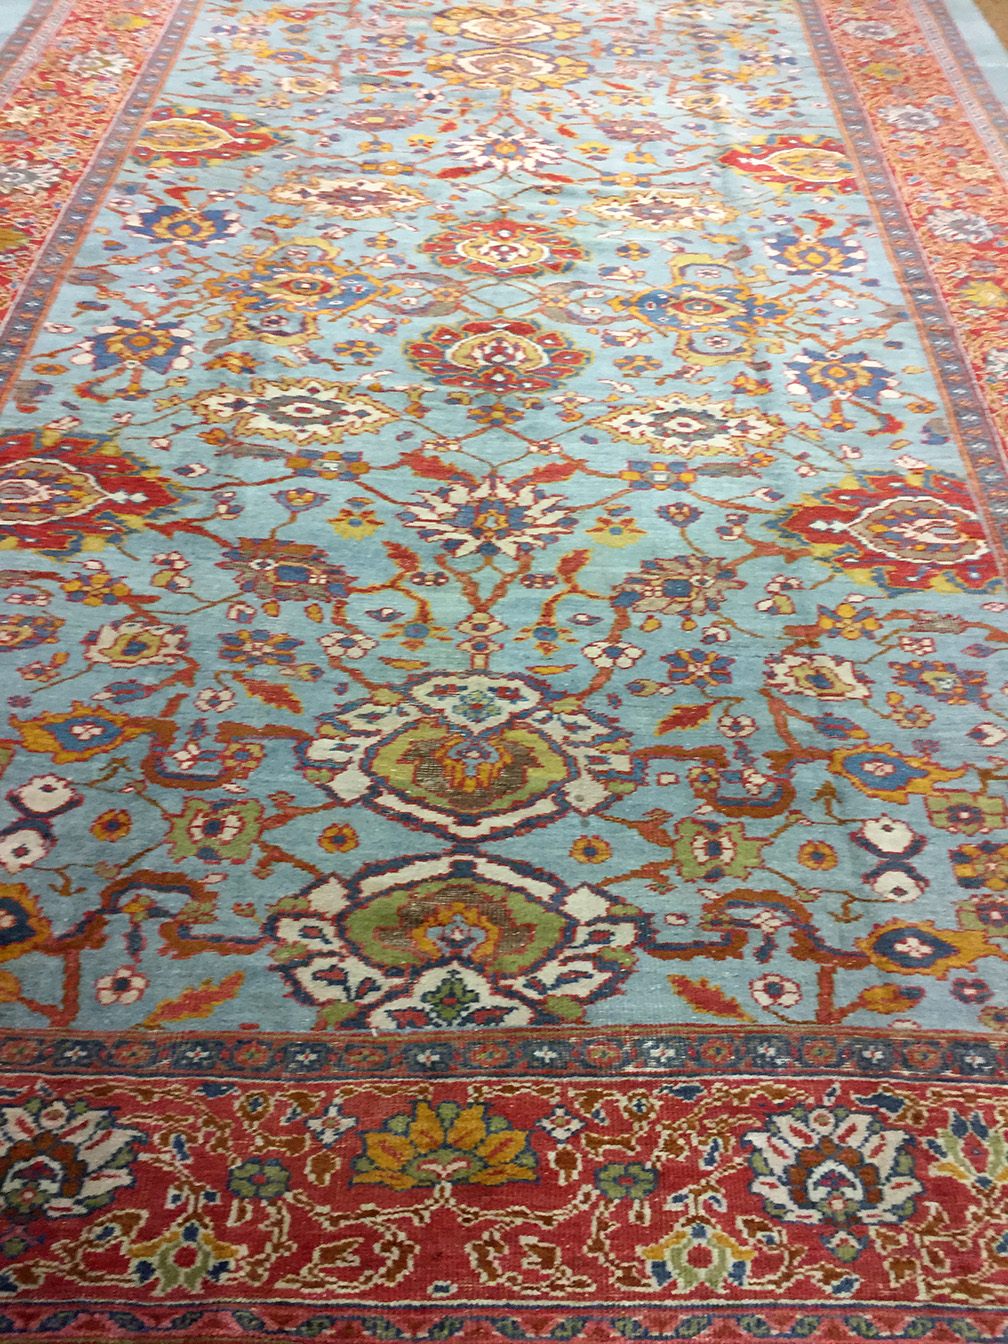 Antique sultan abad Carpet - # 54177